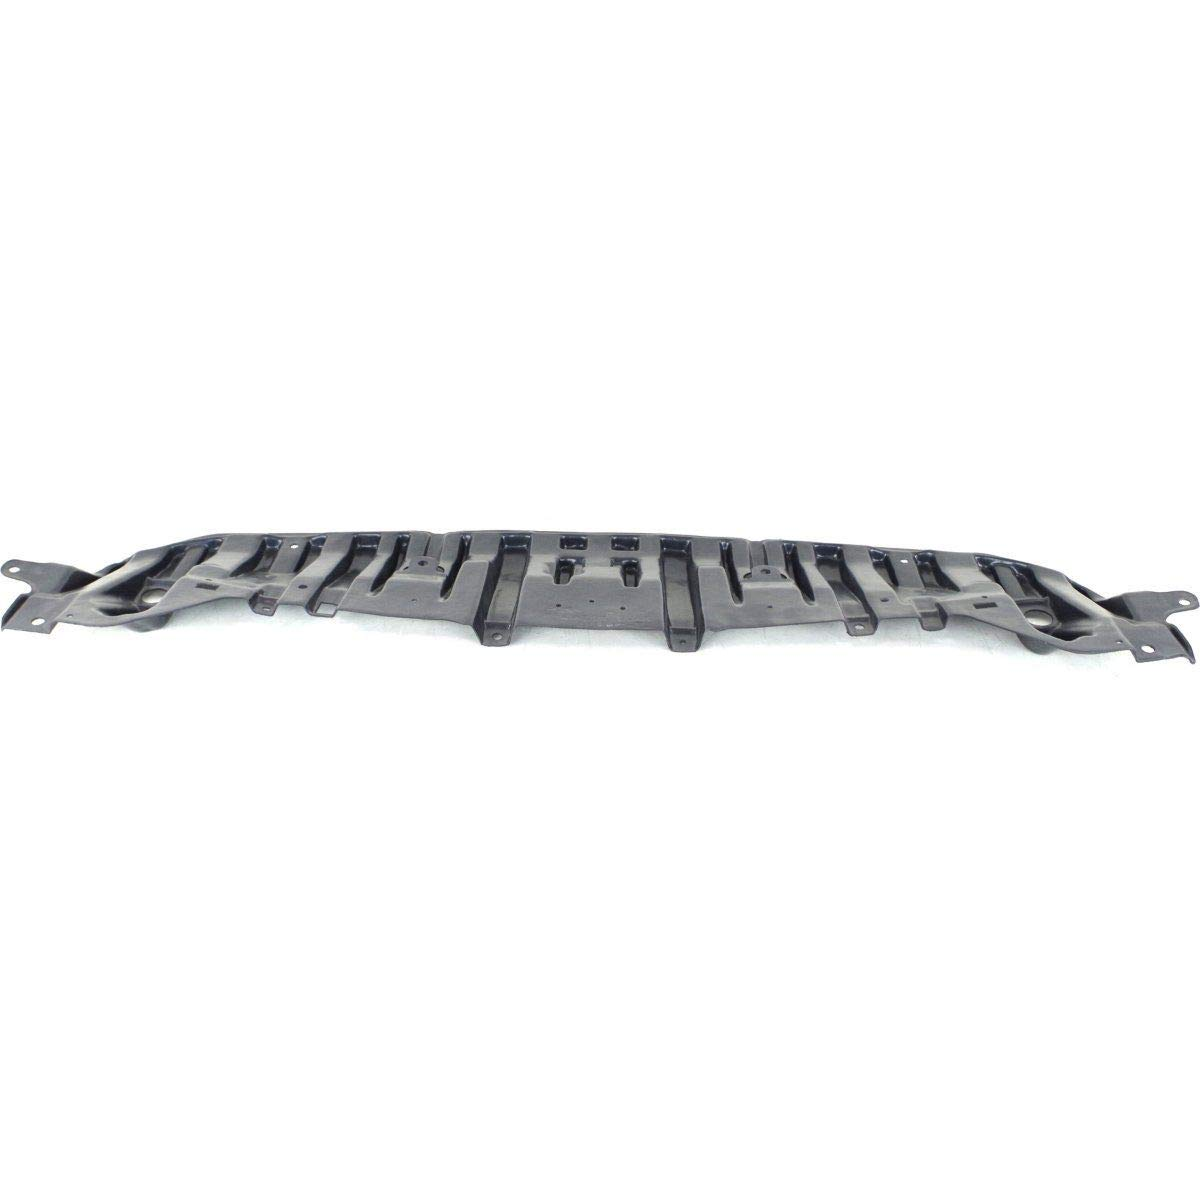 New Front Engine Splash Shield For 2012-2015 Toyota Prius Under Cover TO1228206